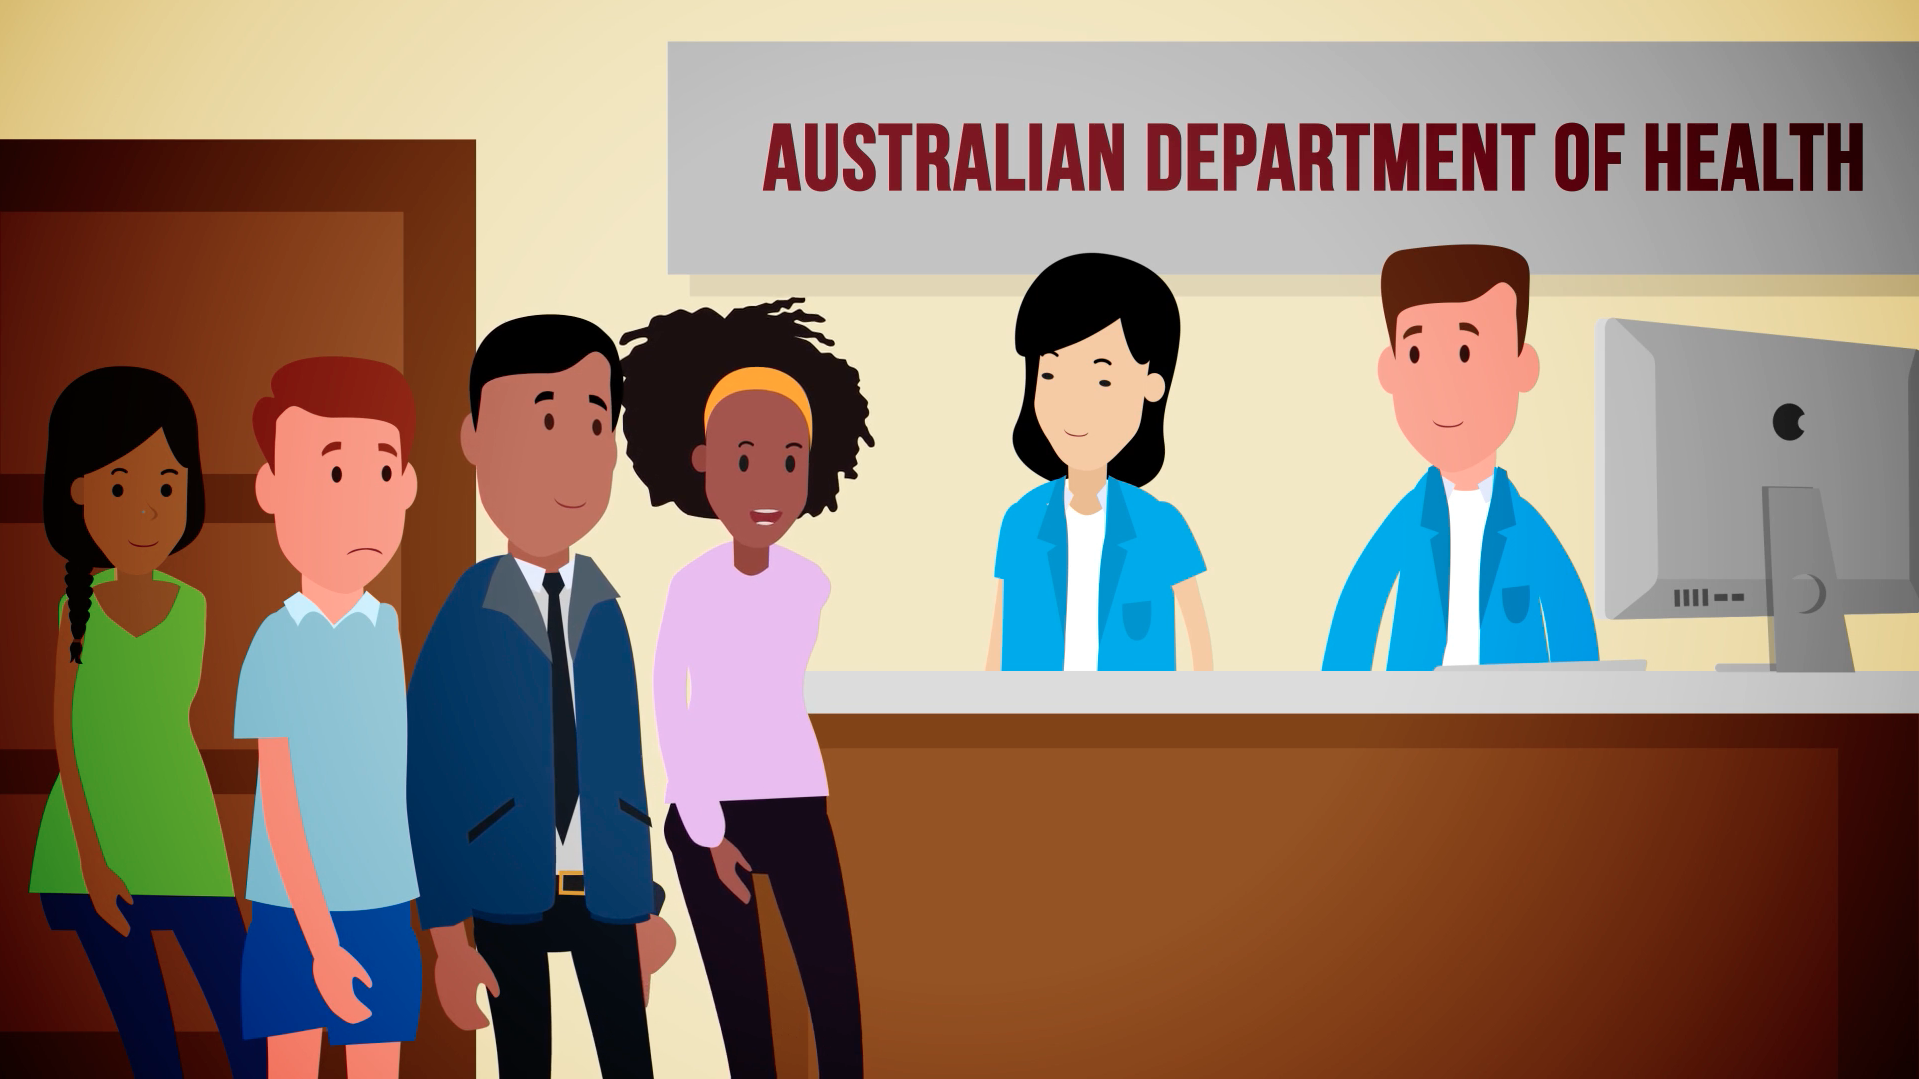 CS A Unit 6 illustration of the Australian Department of Health front desk